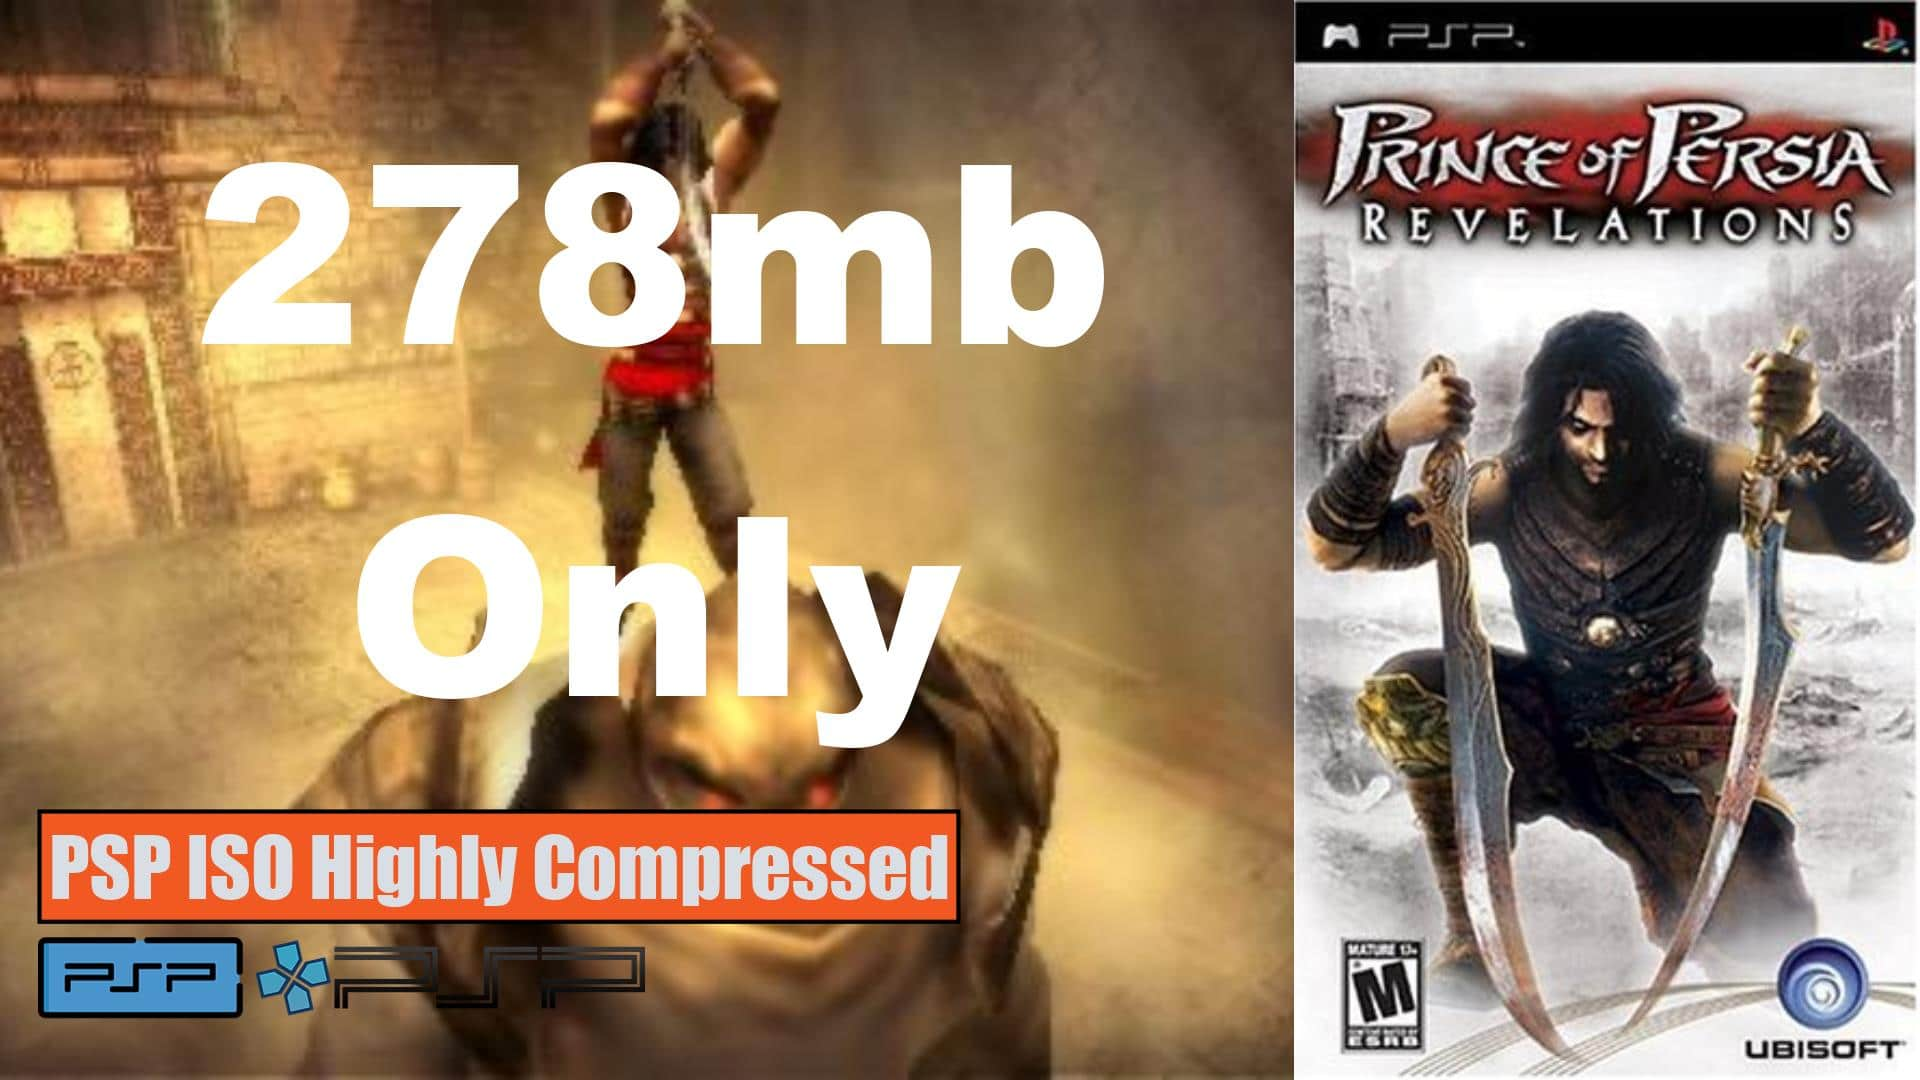 Prince of Persia Revelations PSP ISO Highly Compressed